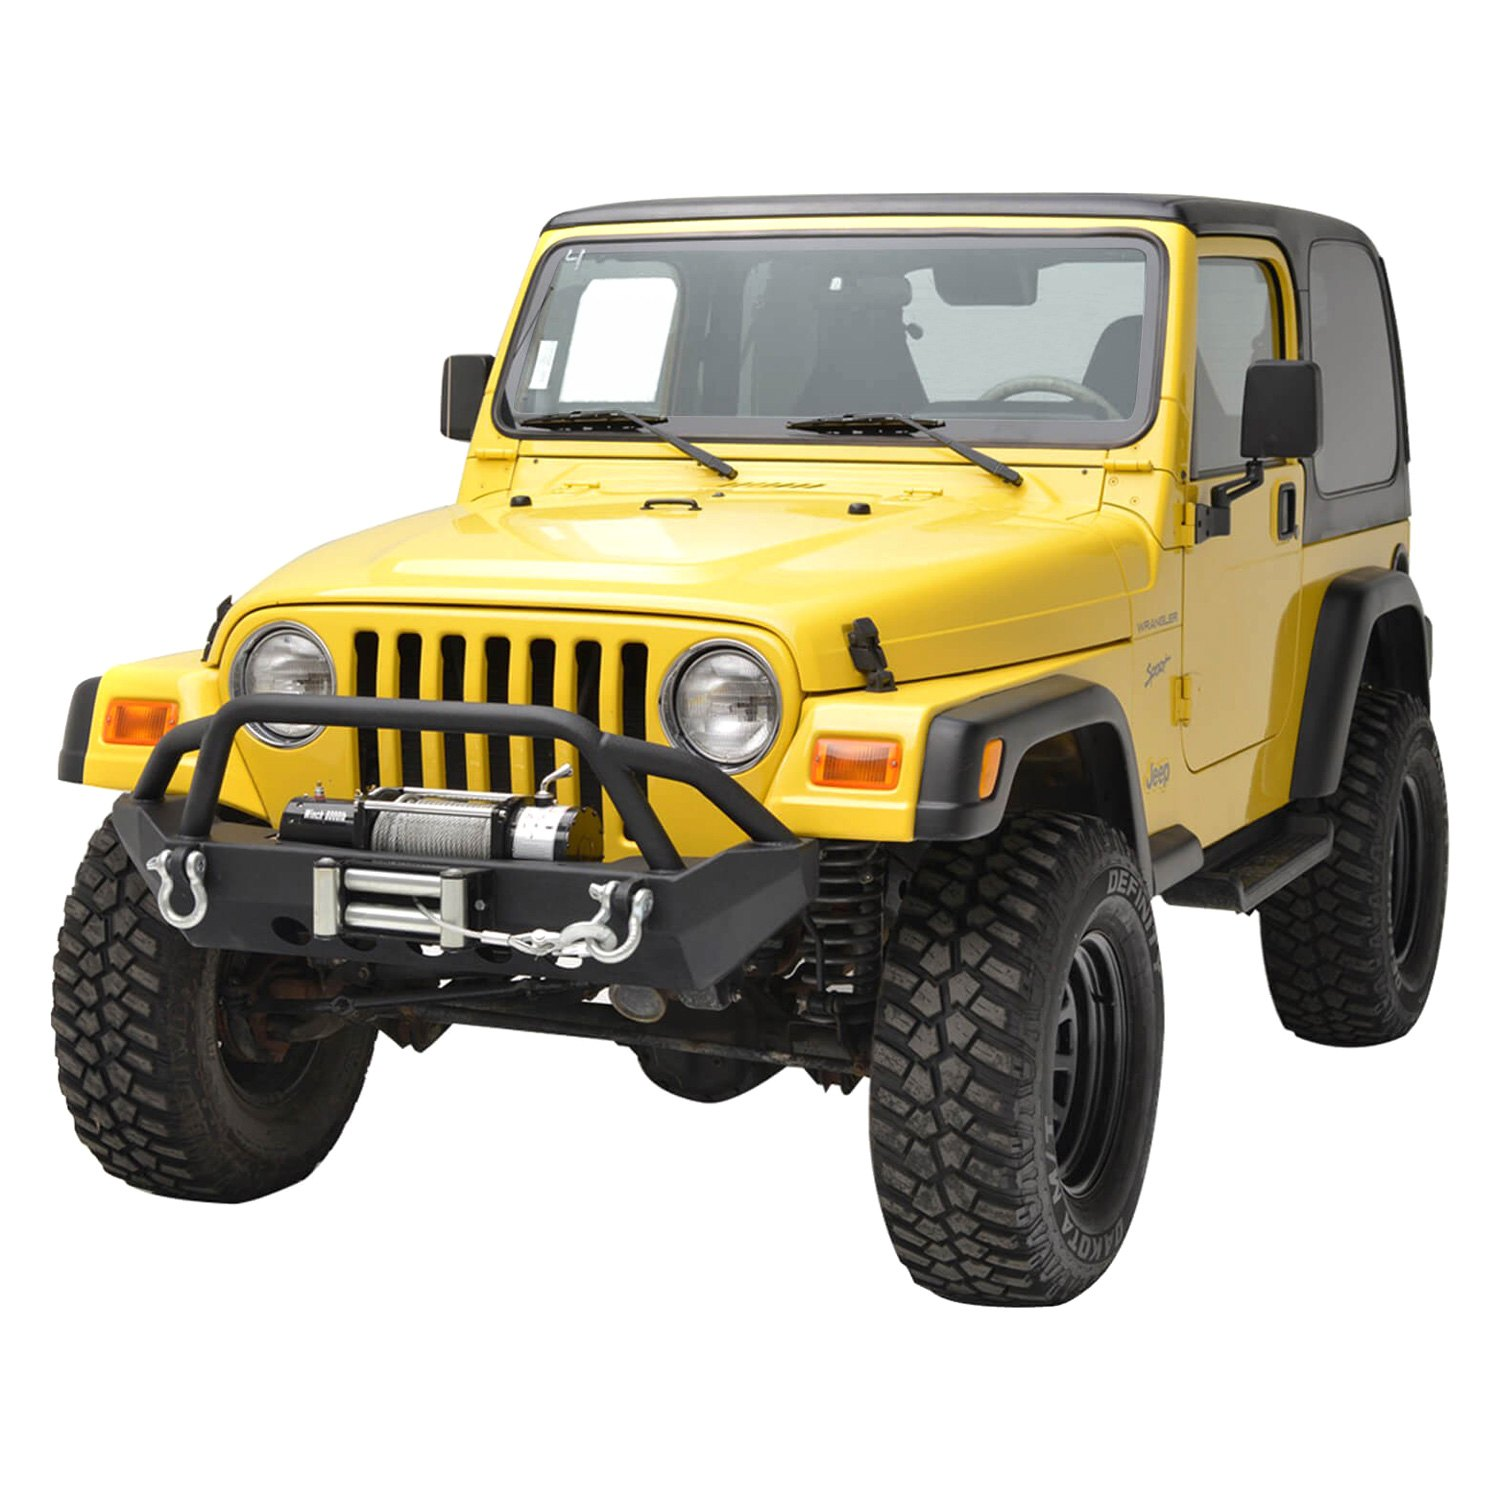 paramount jeep wrangler 1997 2006 off road r2 mid width black front winch hd bumper with. Black Bedroom Furniture Sets. Home Design Ideas